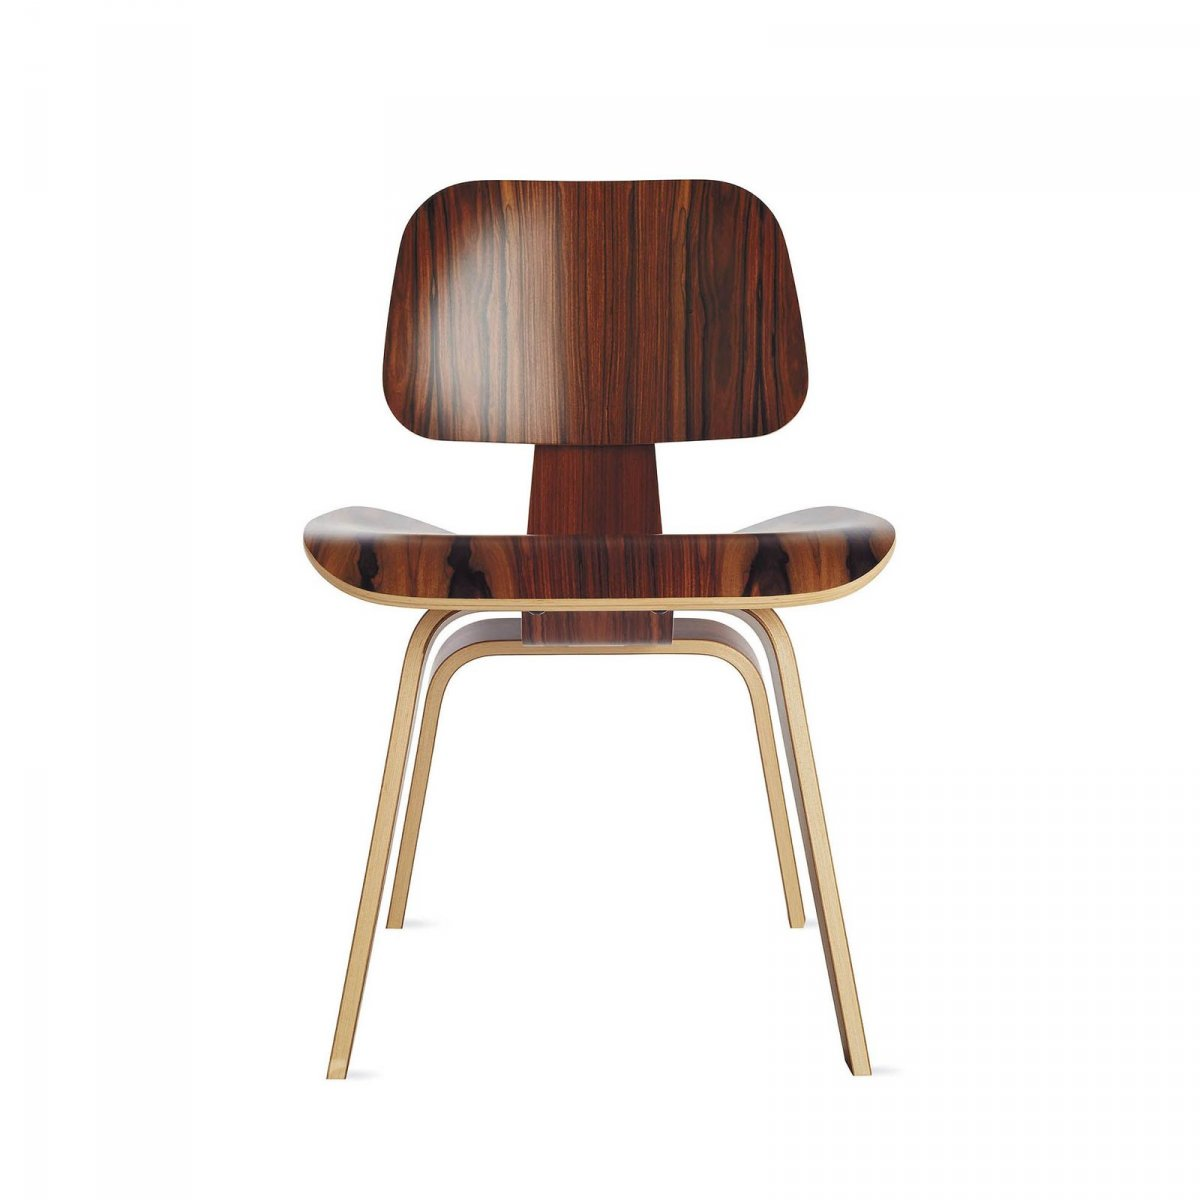 Eames Molded Plywood Dining Chair Wood Base, santos palisander.